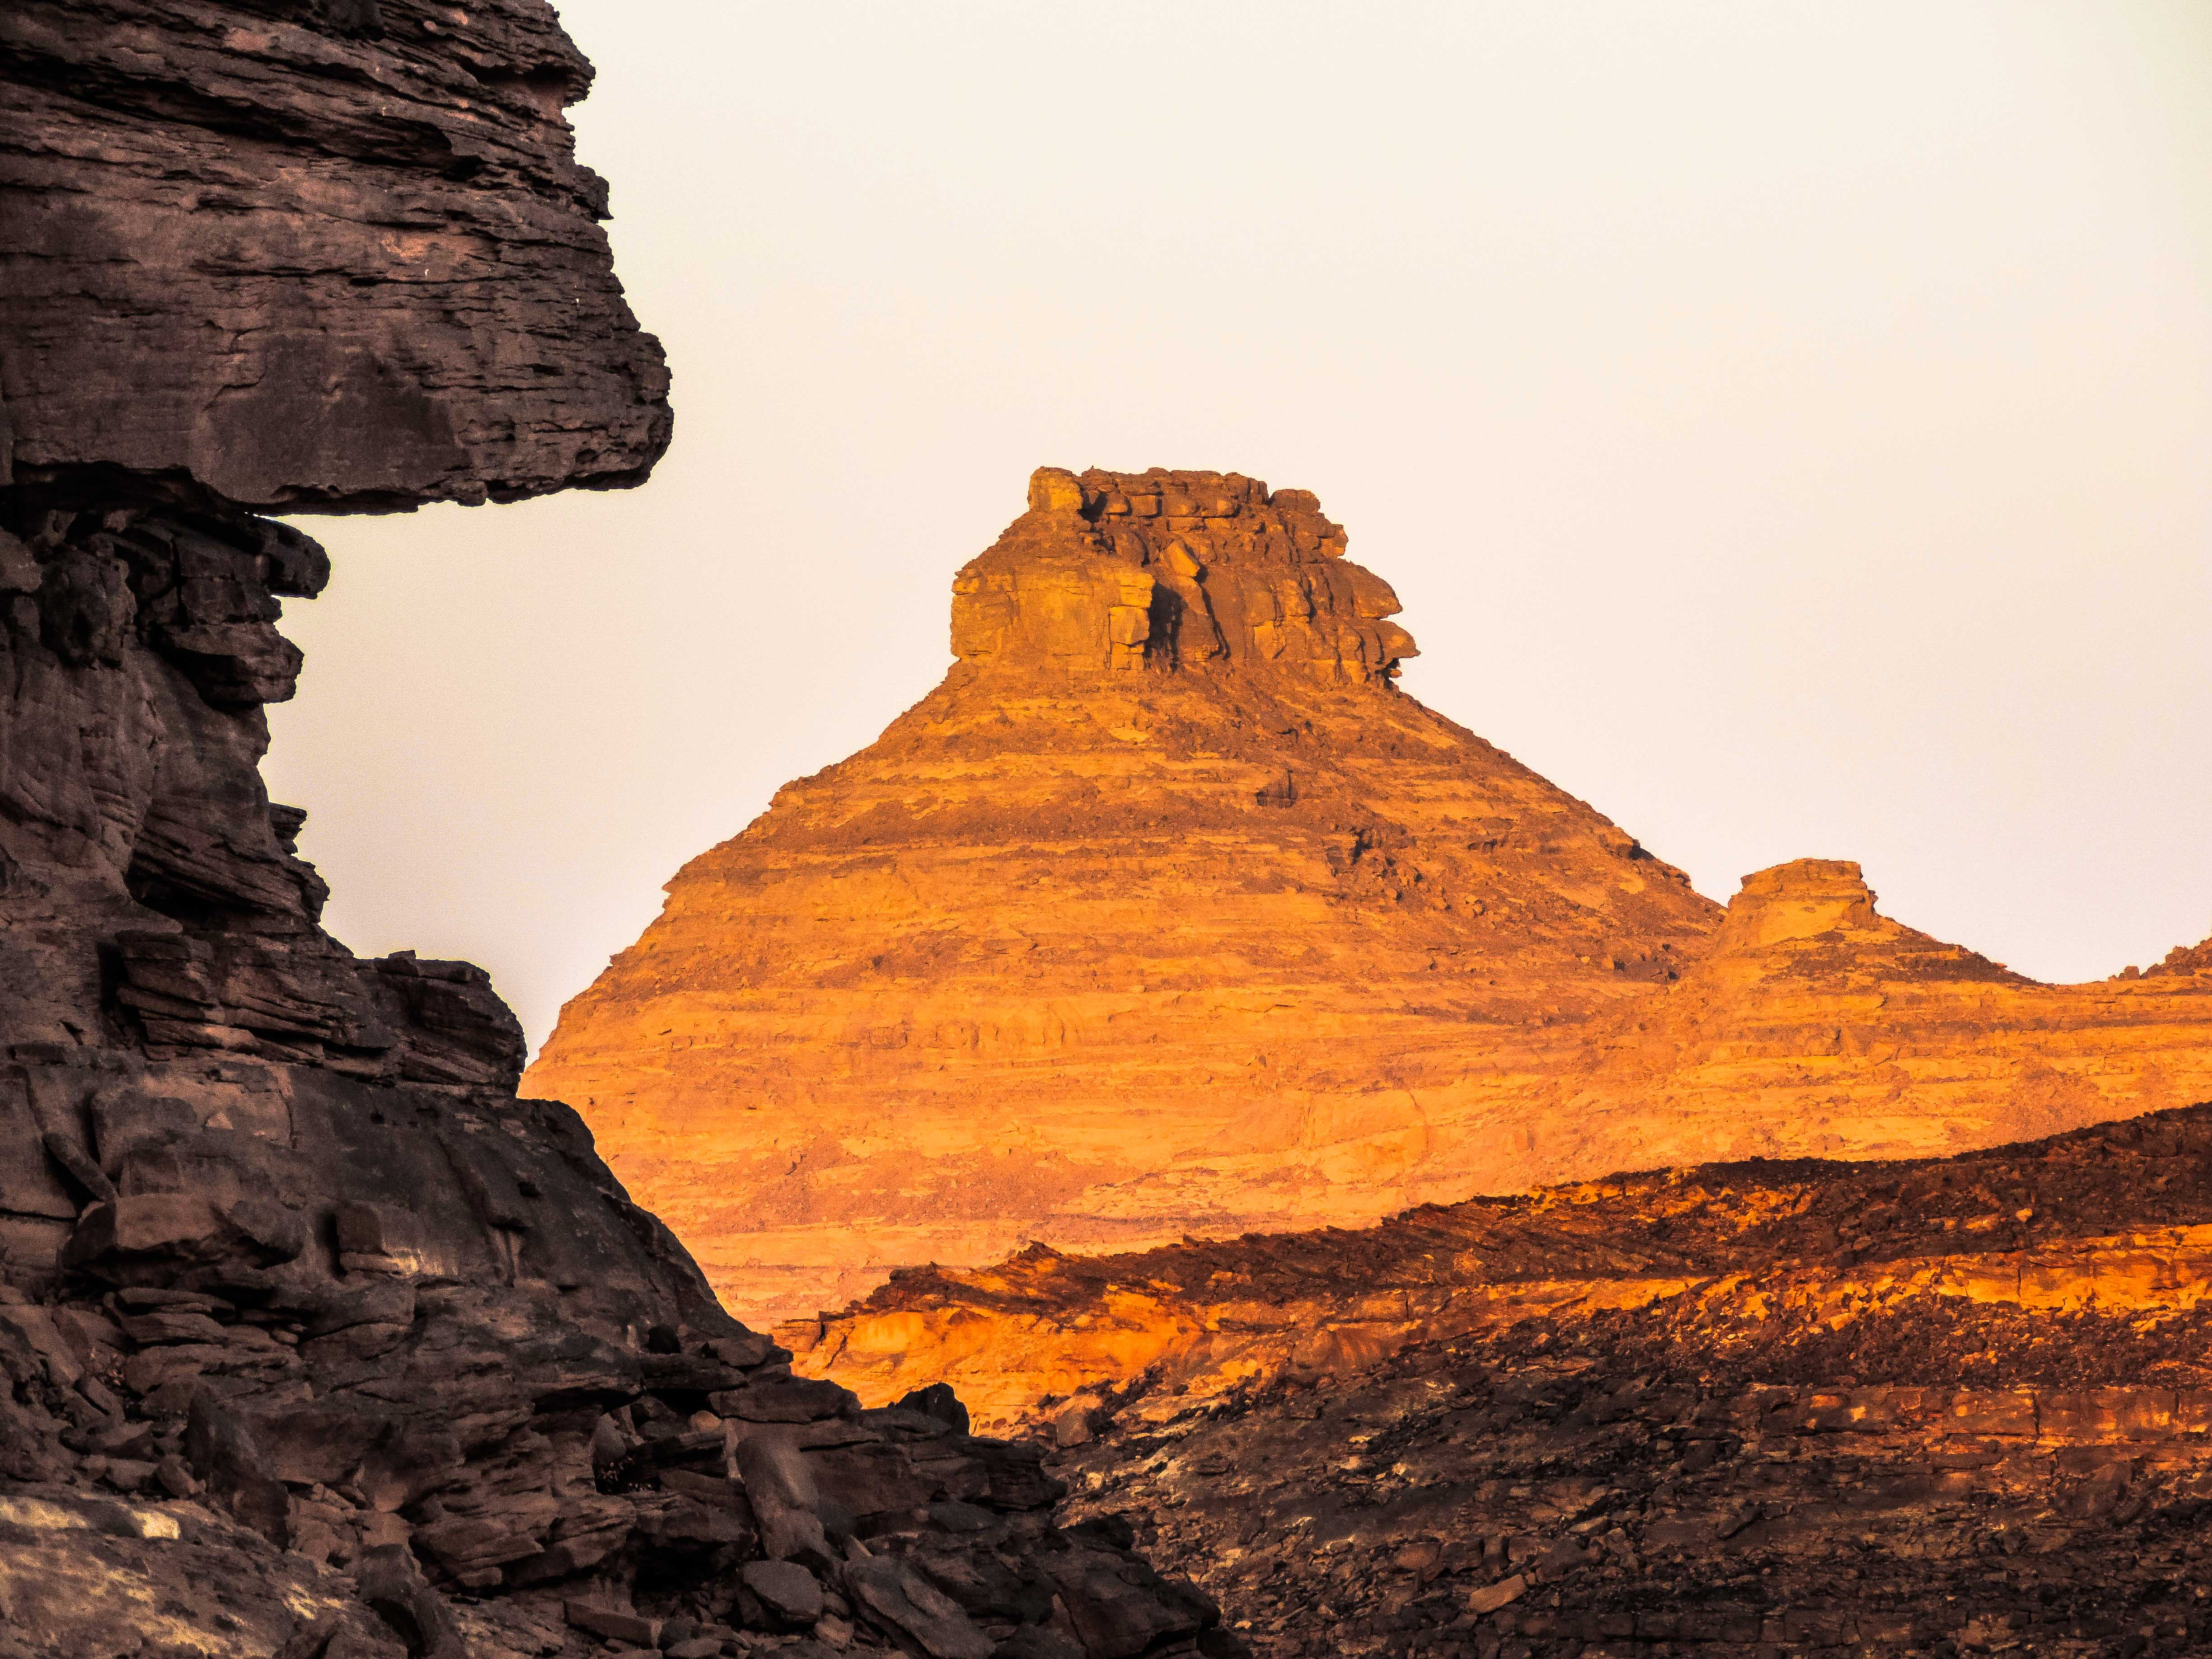 Contrast of colors created by the evening light on the sandstones of Al-Qarah mountains (photo: Elizabeth Henrich)